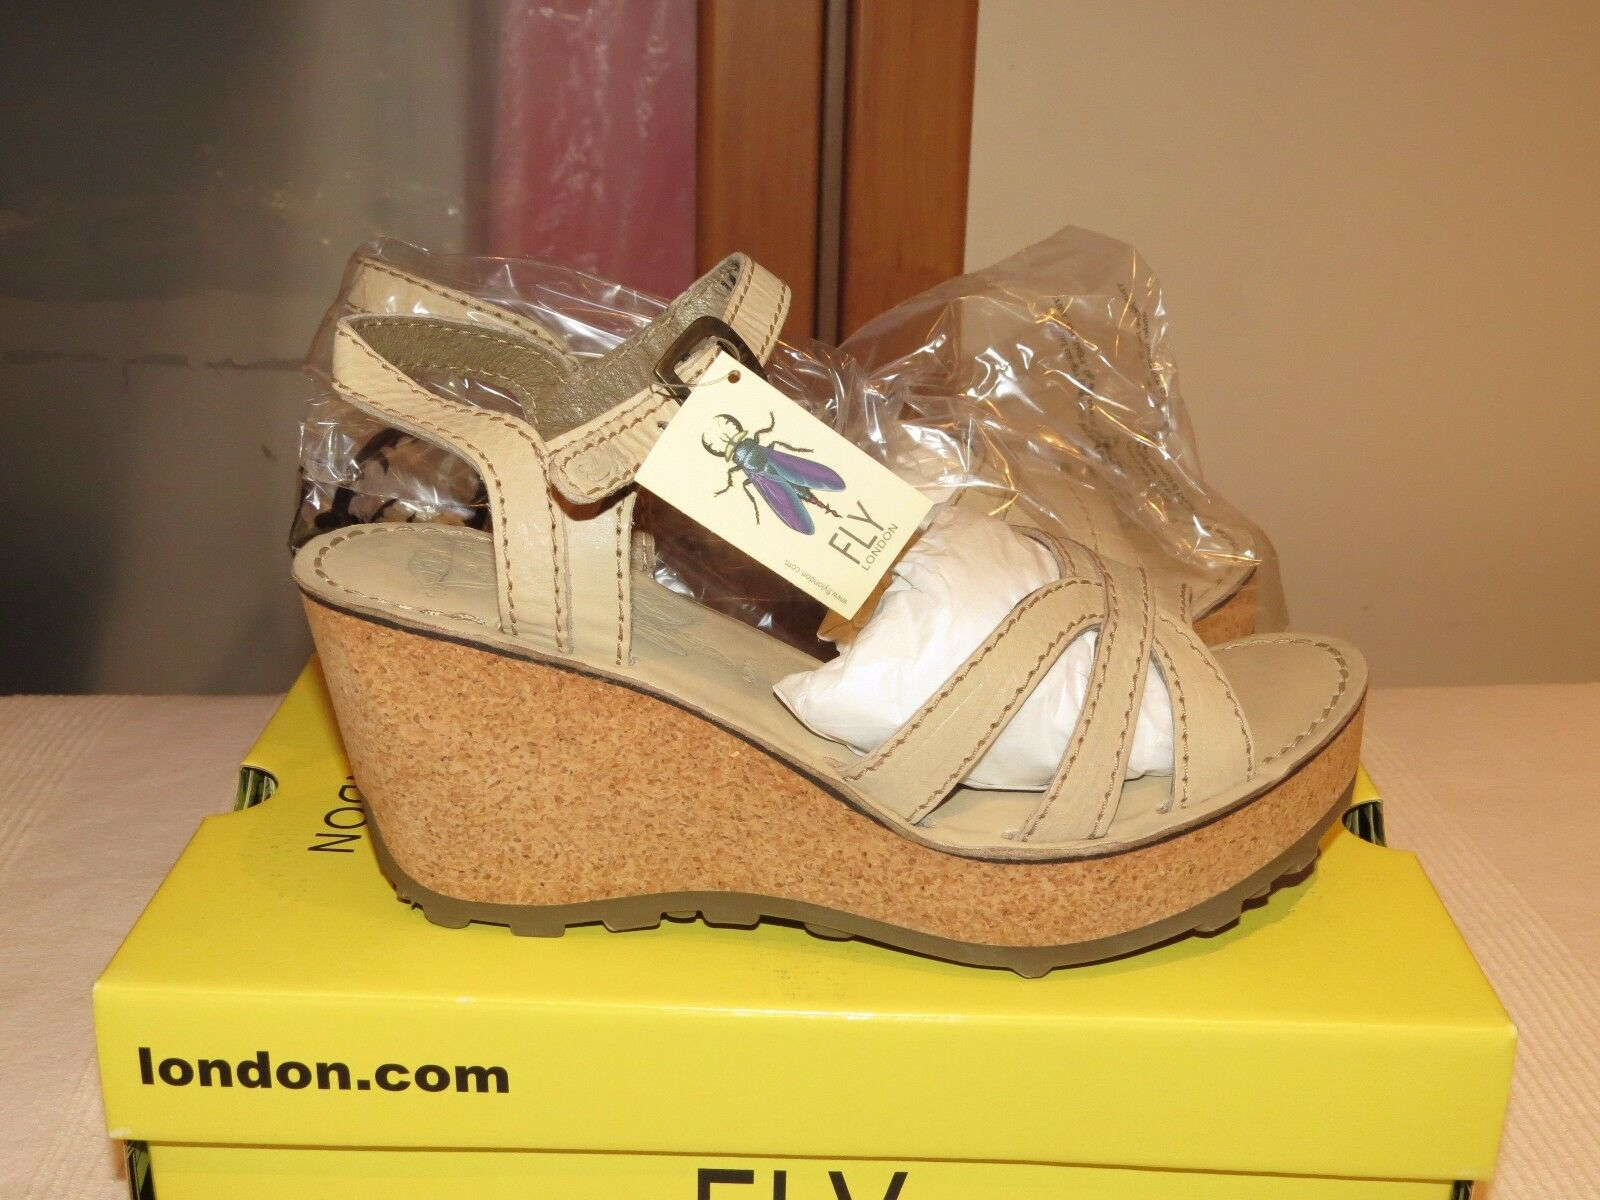 FLY FLY FLY LONDON GORT645FLY LEATHER PLATFORM WEDGE SANDALS UK 8 EUR 41 BNIB cd4d90